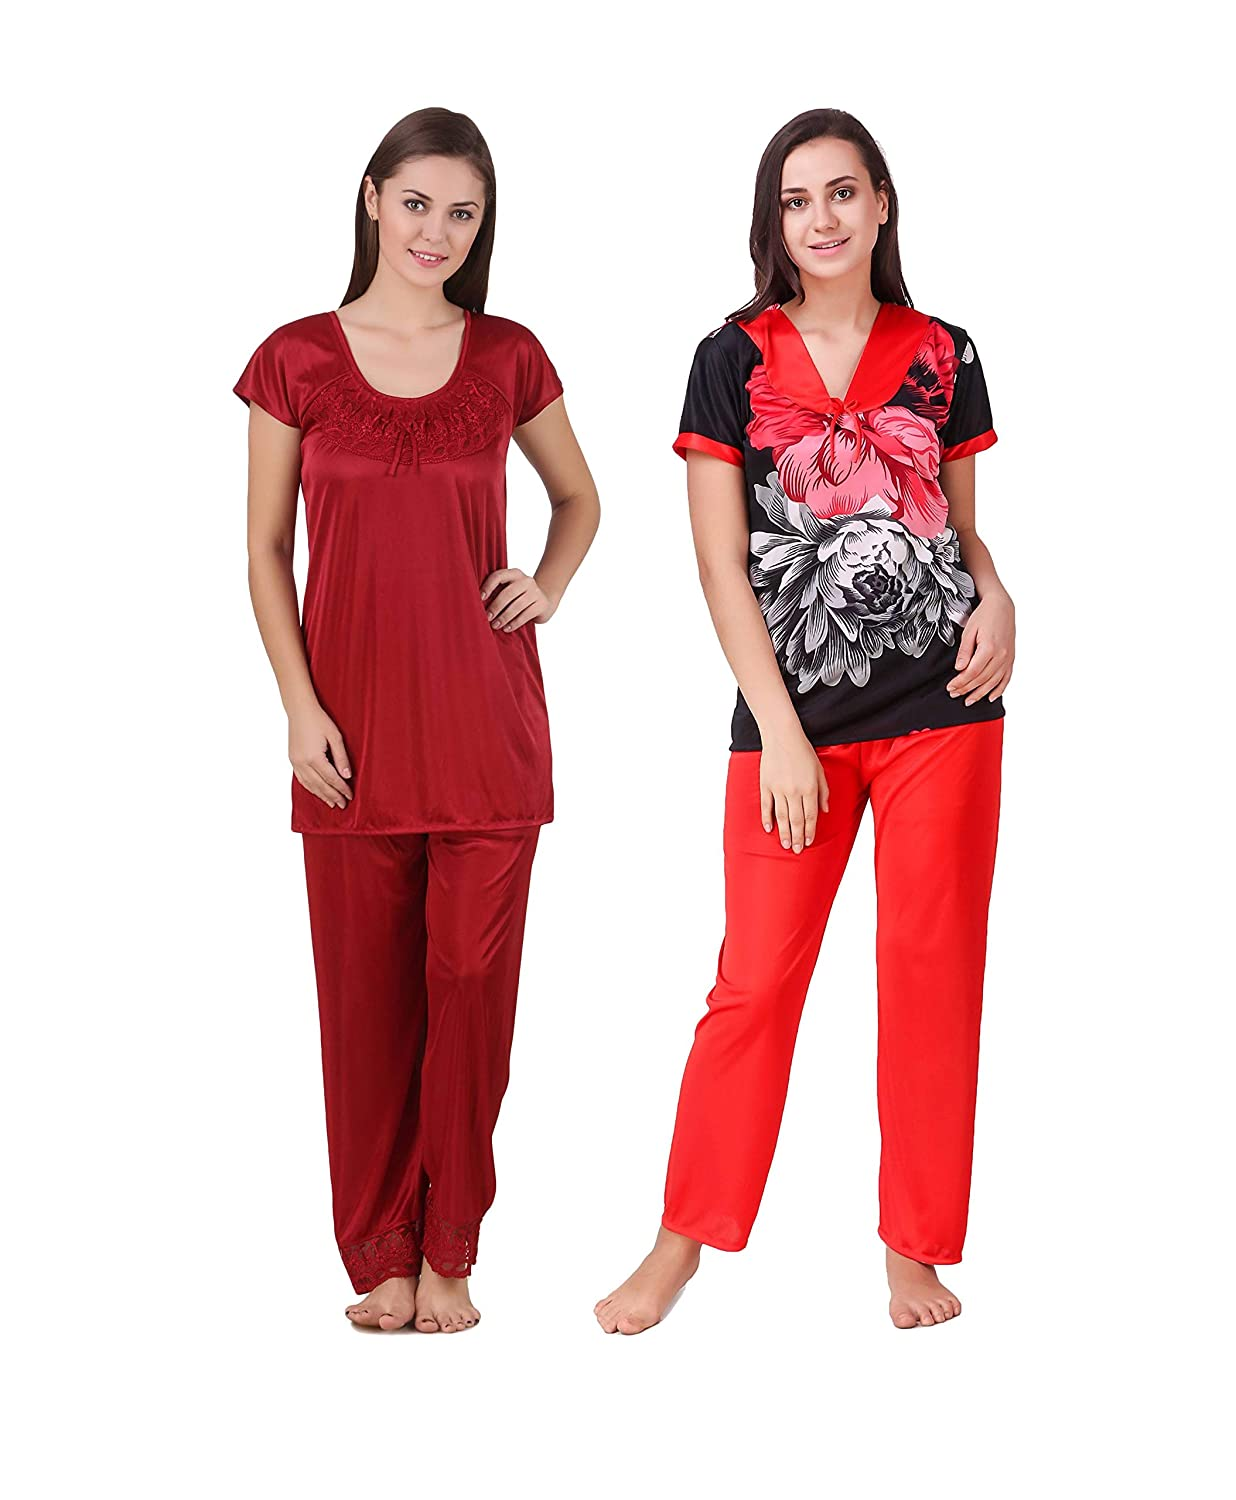 786523c4517 KEOTI Satin Night Suit Set Nighty Set - Pack of 2  Amazon.in  Clothing    Accessories